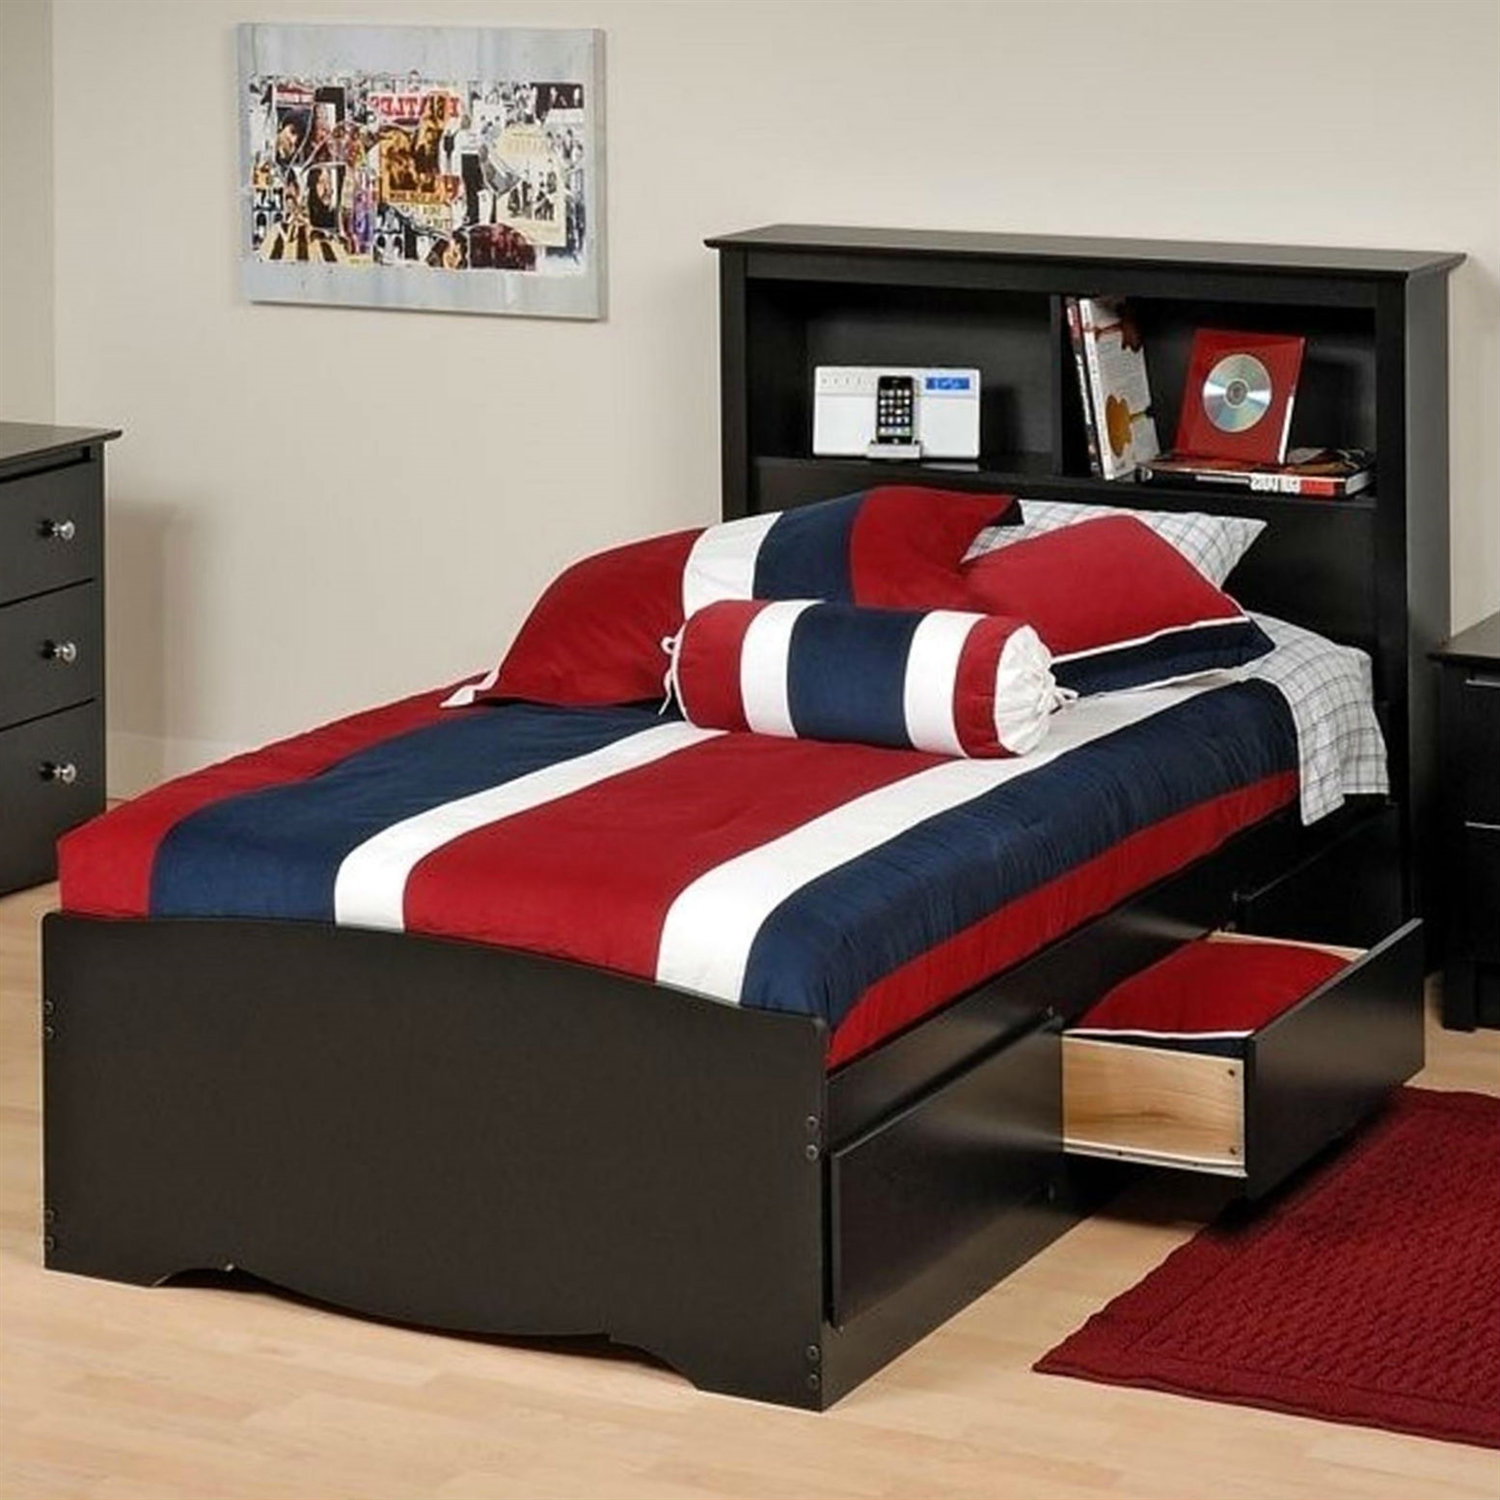 Twin XL Platform Bed with Bookcase Headboard 3 Storage Drawers